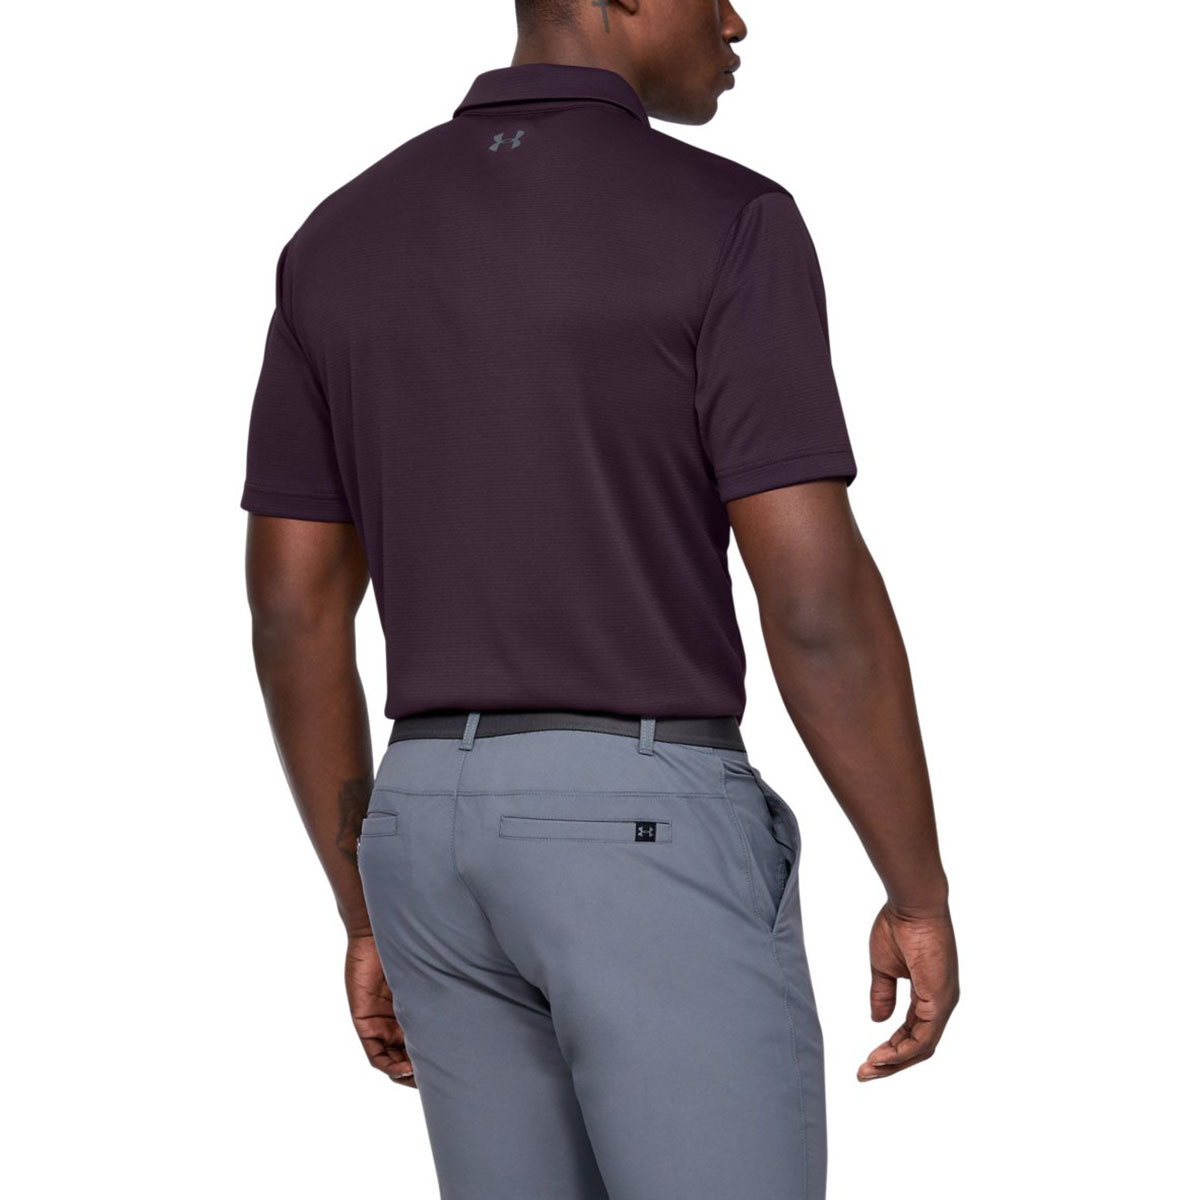 Under-Armour-Mens-2019-Golf-Tech-Wicking-Textured-Soft-Light-Polo-Shirt thumbnail 41